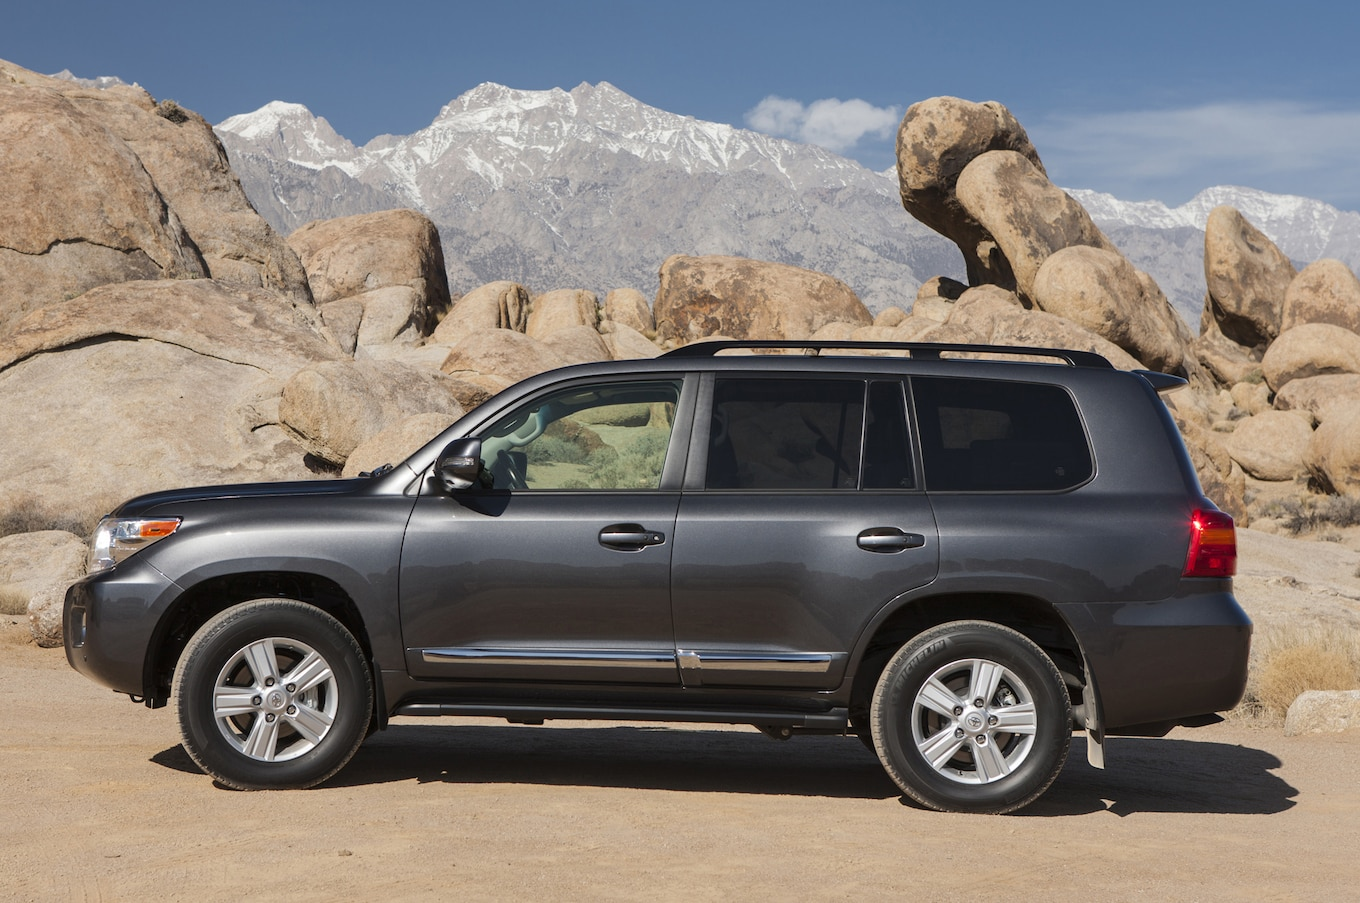 Toyota Land Cruiser 300 2015